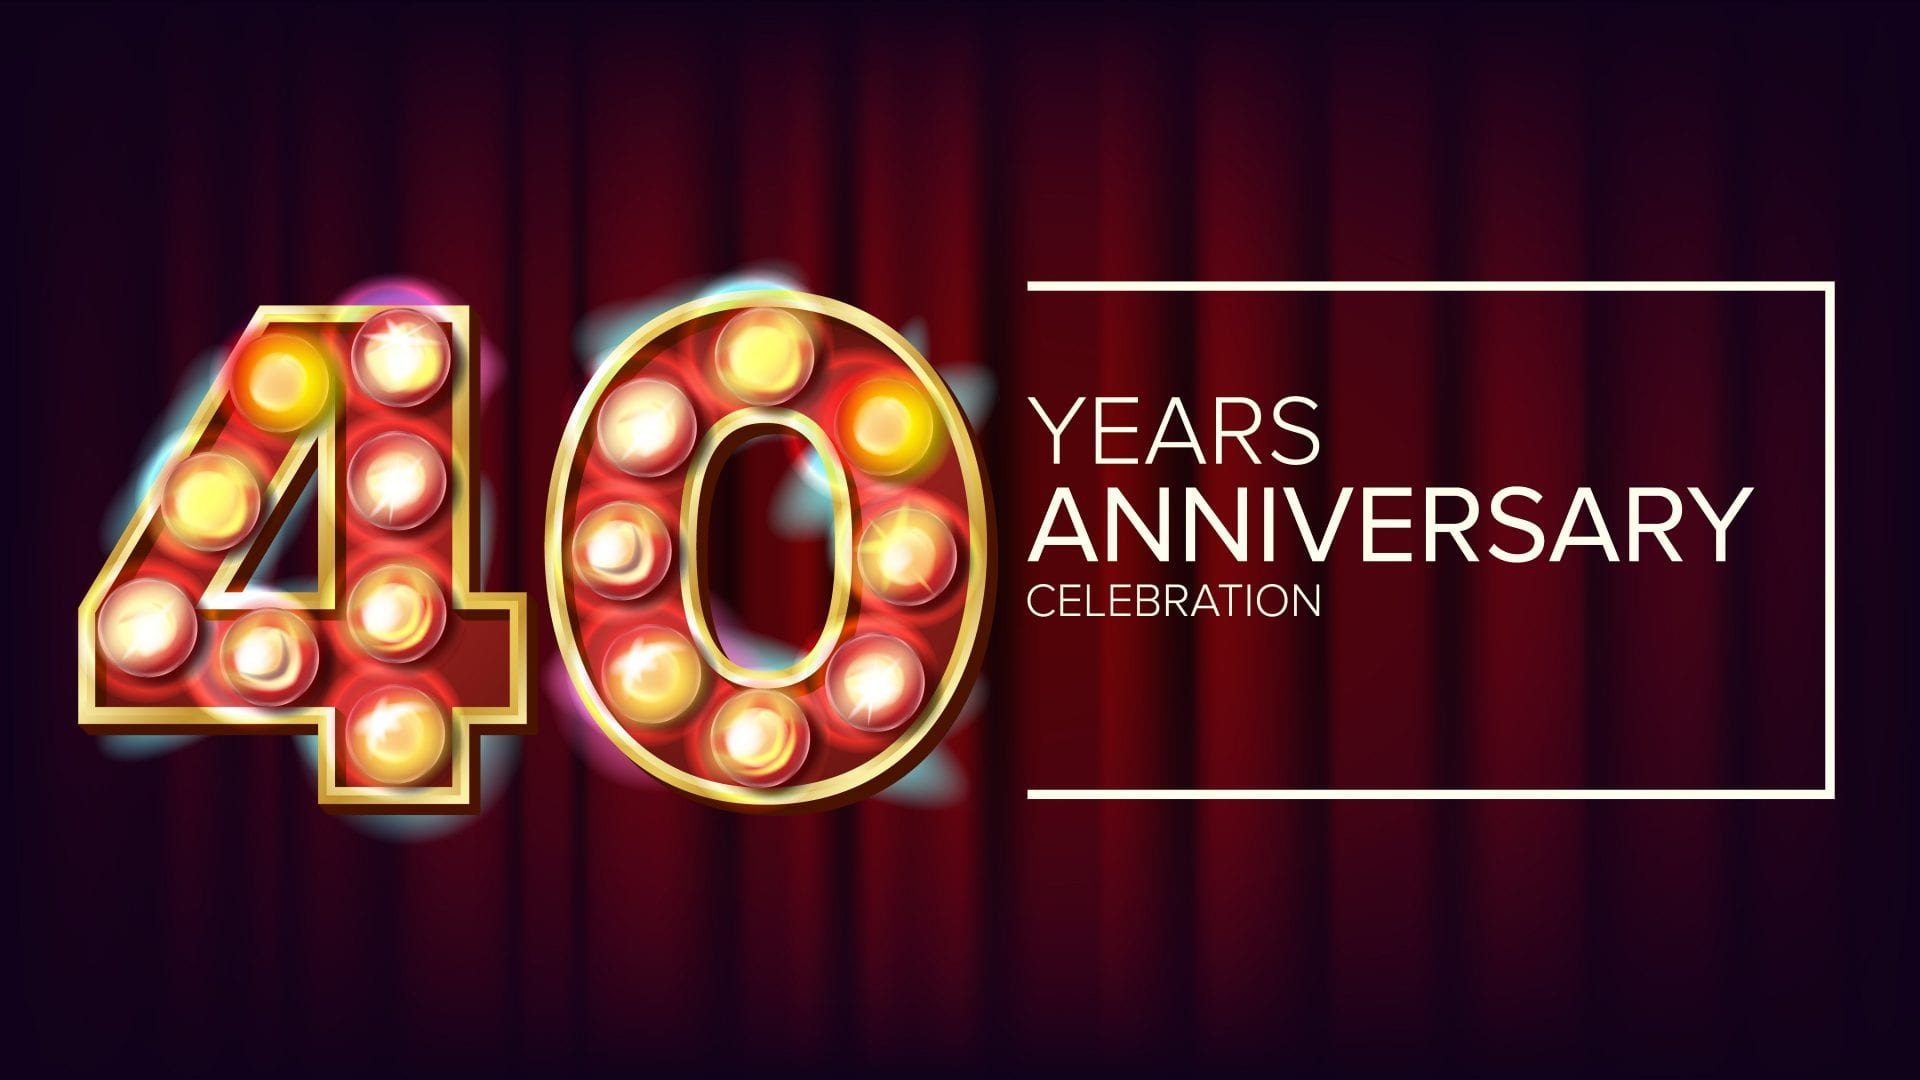 40 Years Anniversary Banner Vector. Forty, Fortieth Celebration. Vintage Style Illuminated Light Digits. For Congratulation Postcards, Flyers, Gift Cards Advertising Design. Red Background Illustration